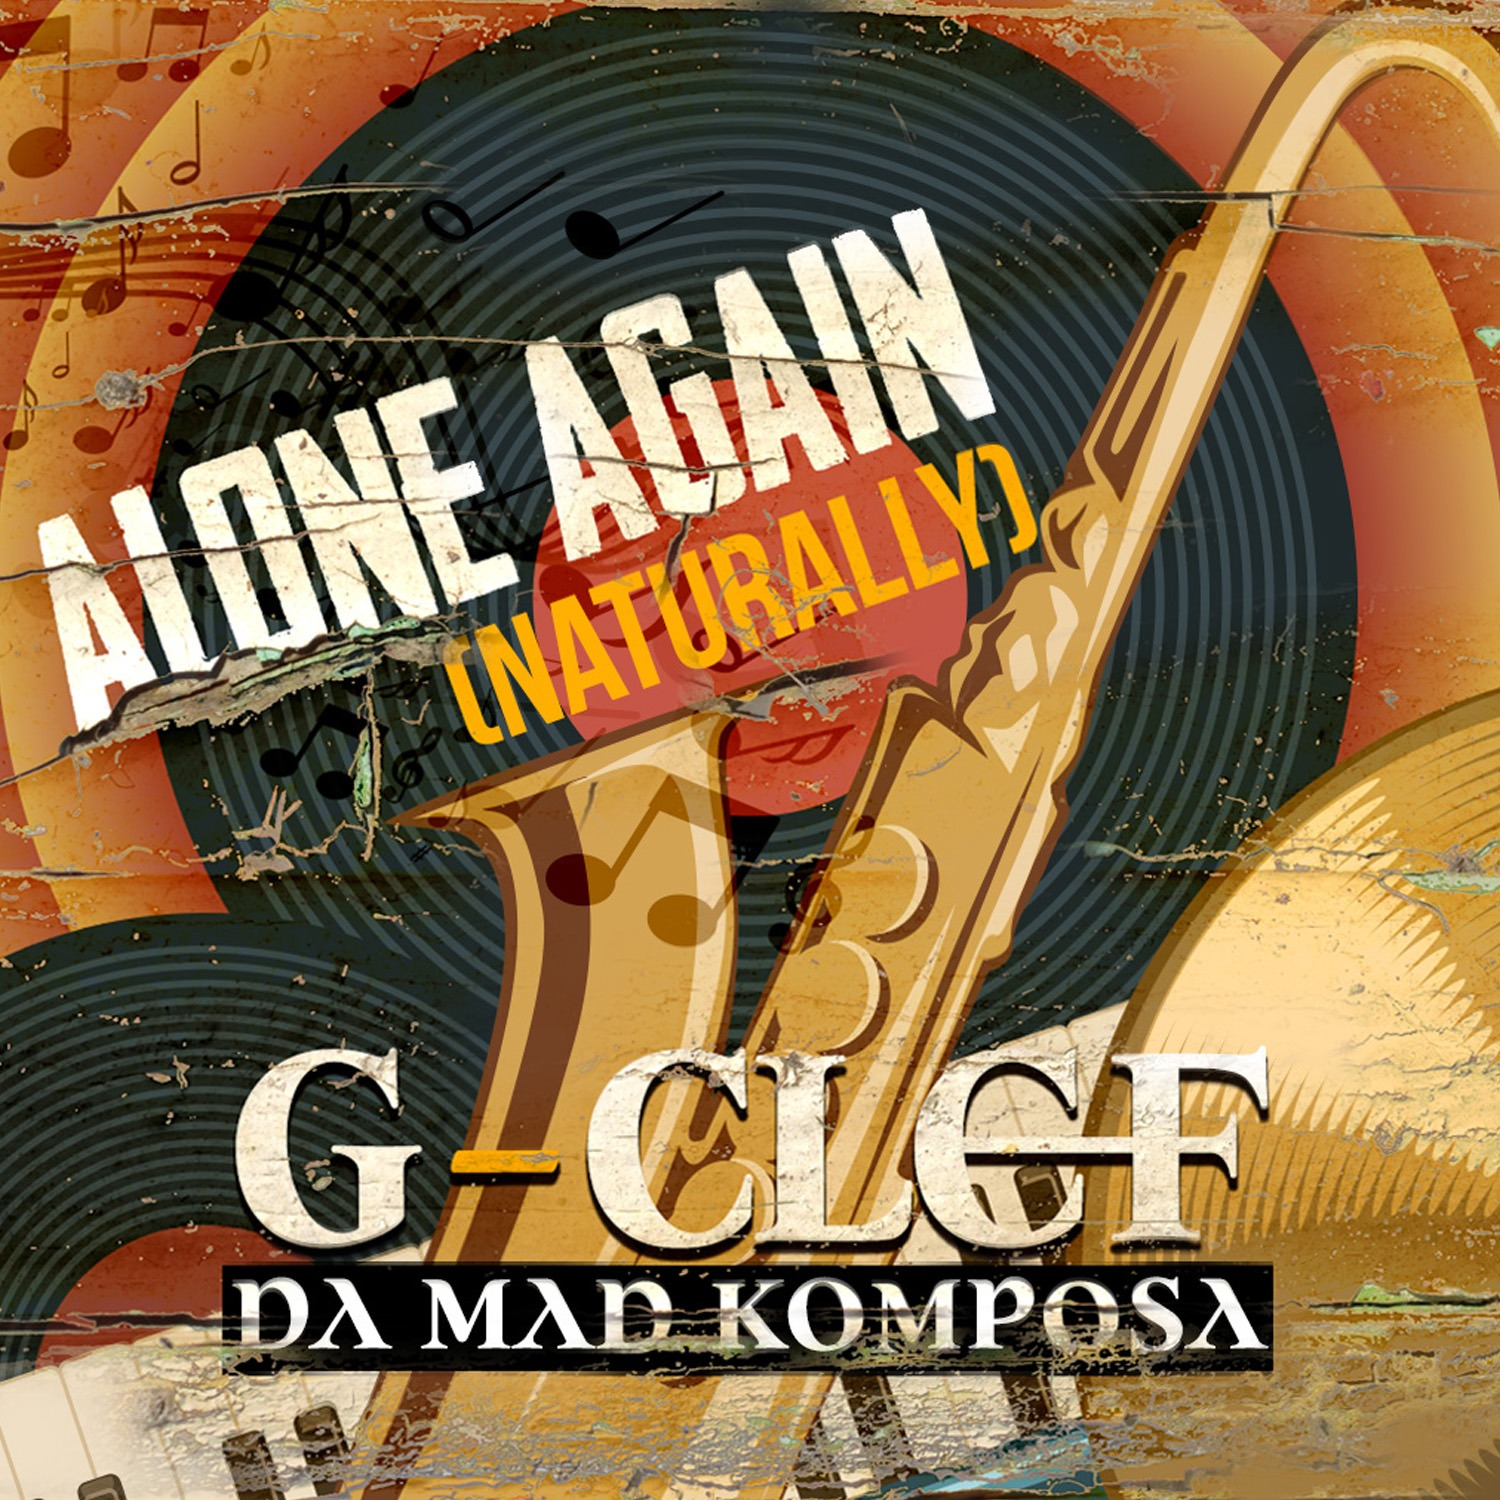 g-clef da mad komposa alone again